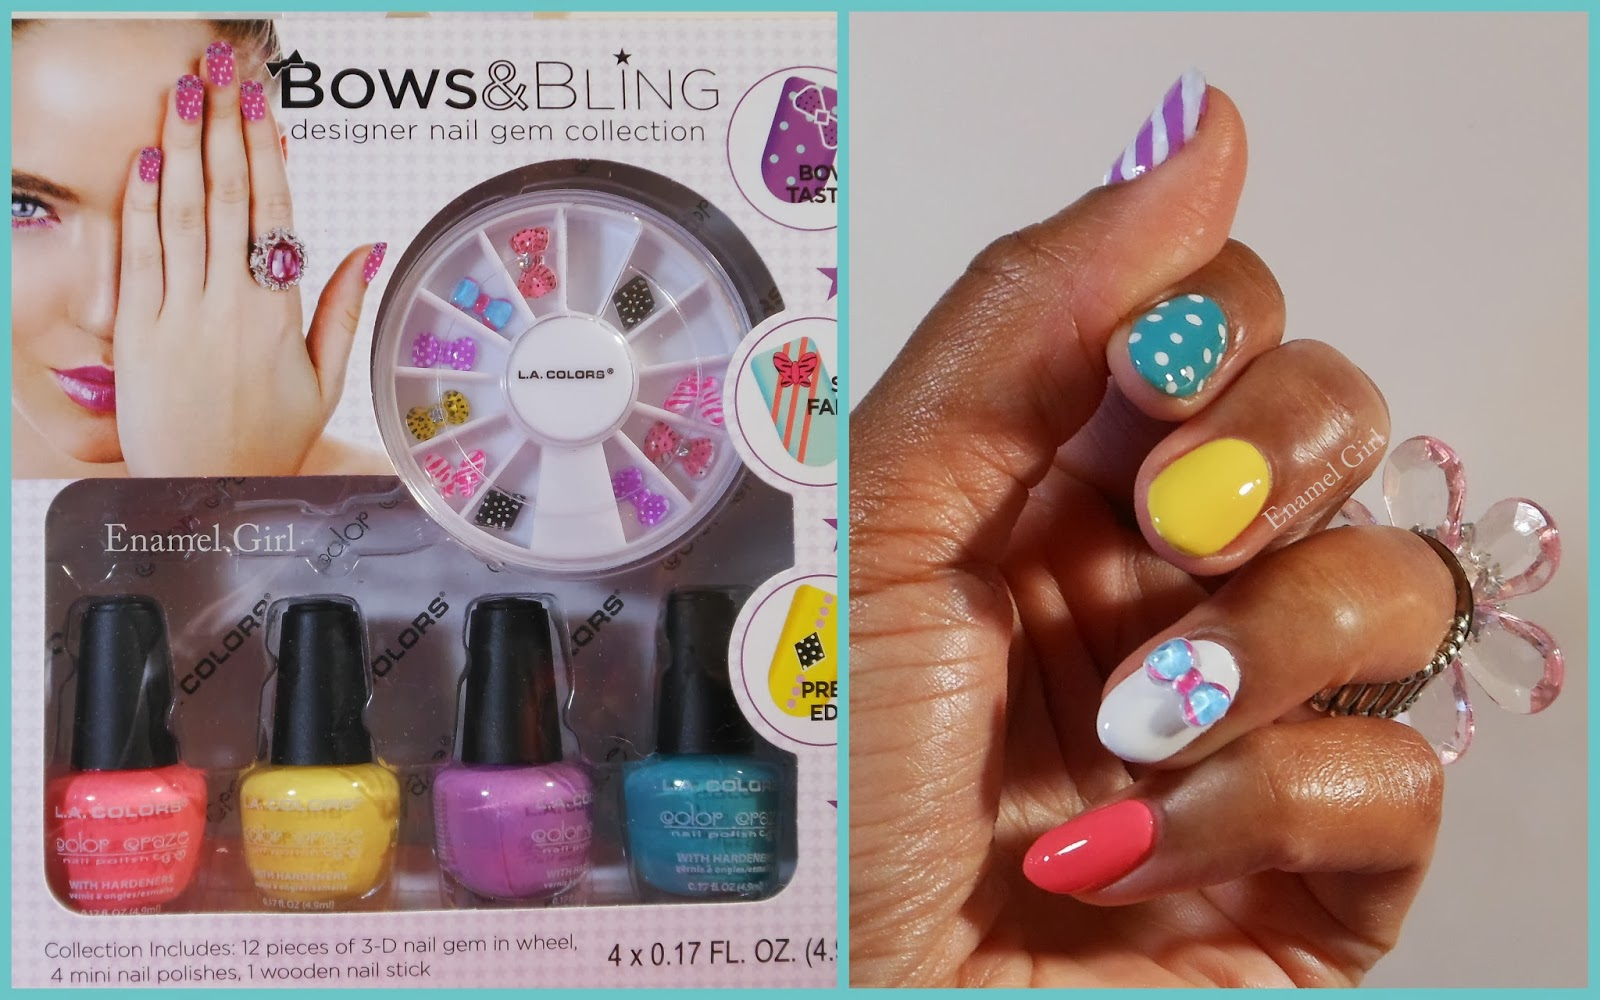 Enamel Girl: L.A. Colors Bows & Bling Nail Art Kit